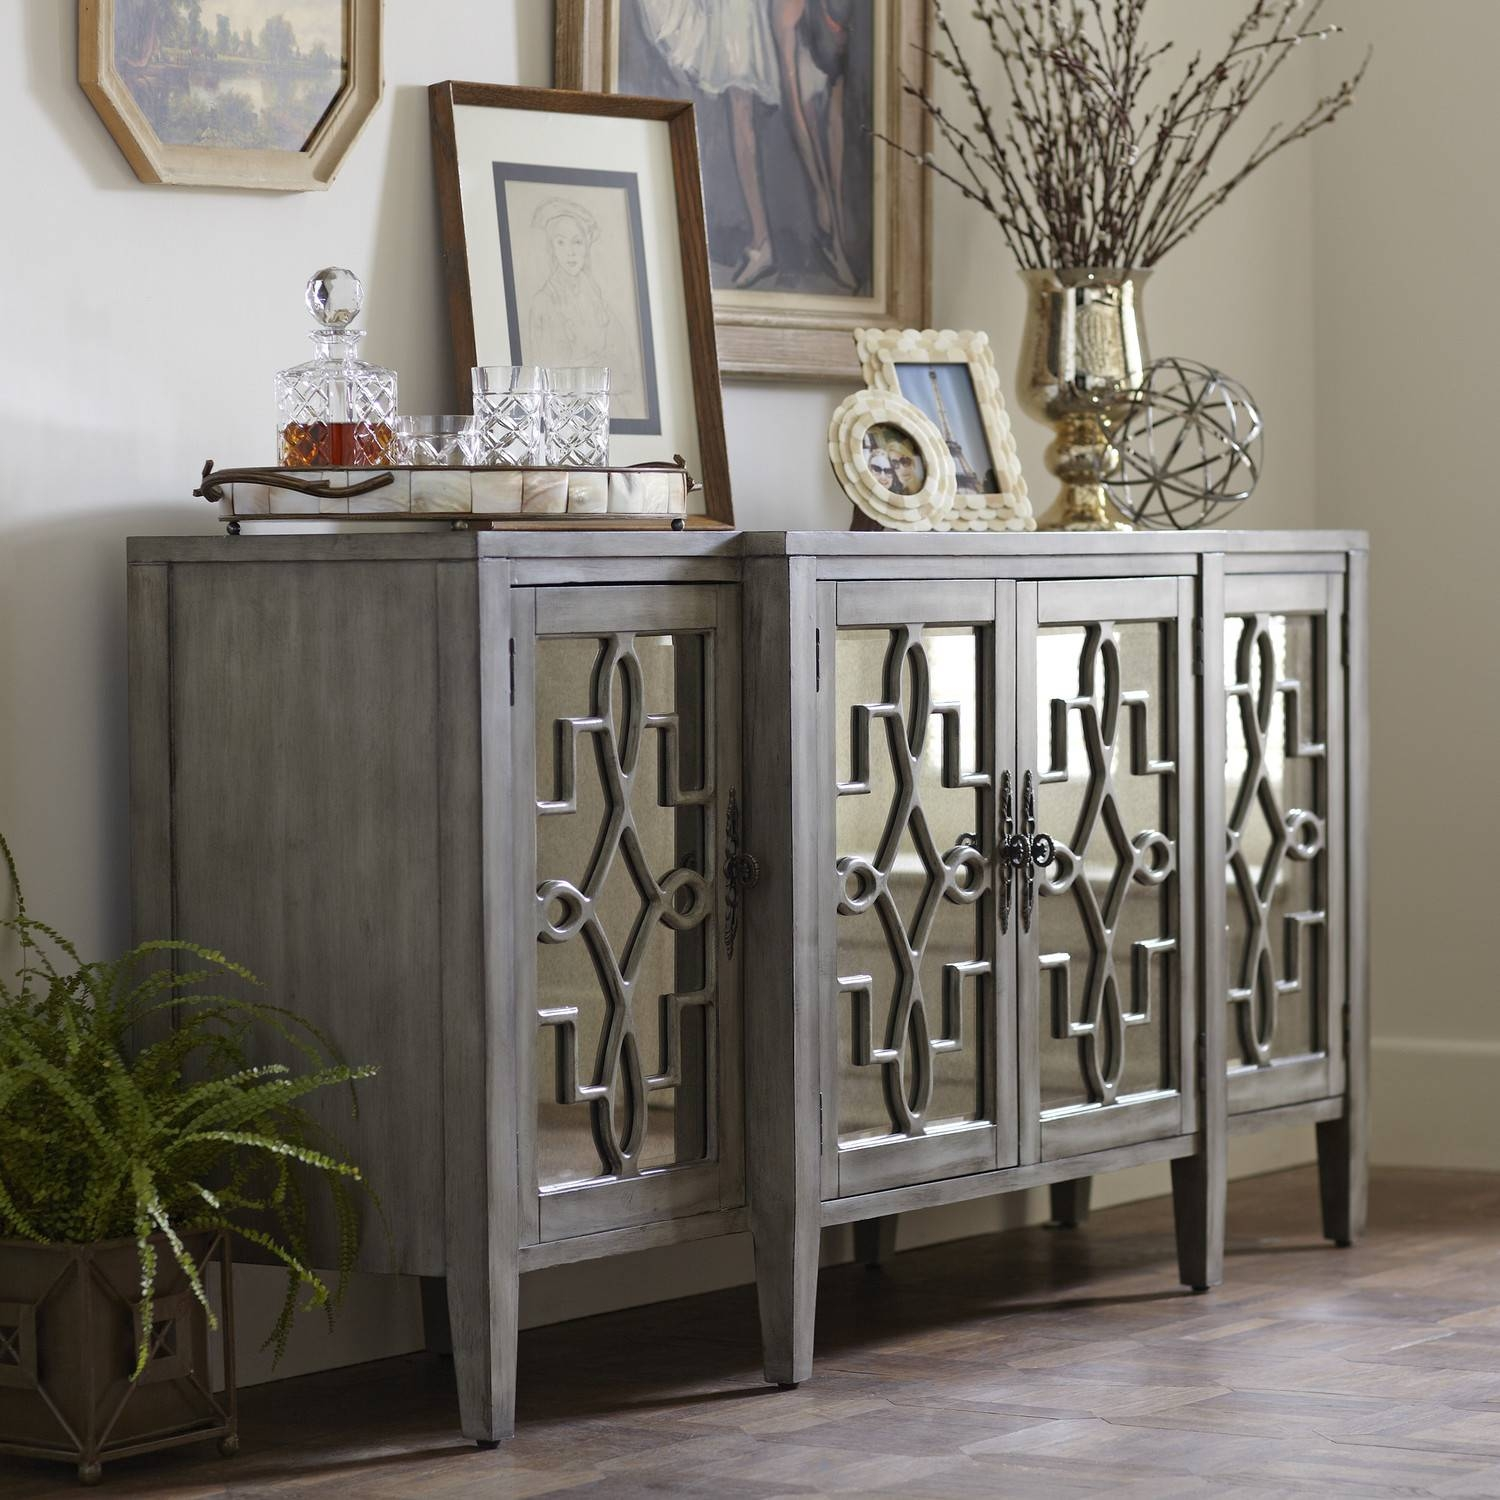 Lovely Mirrored Buffet Sideboard - Bjdgjy regarding Mirrored Buffet Sideboards (Image 10 of 15)